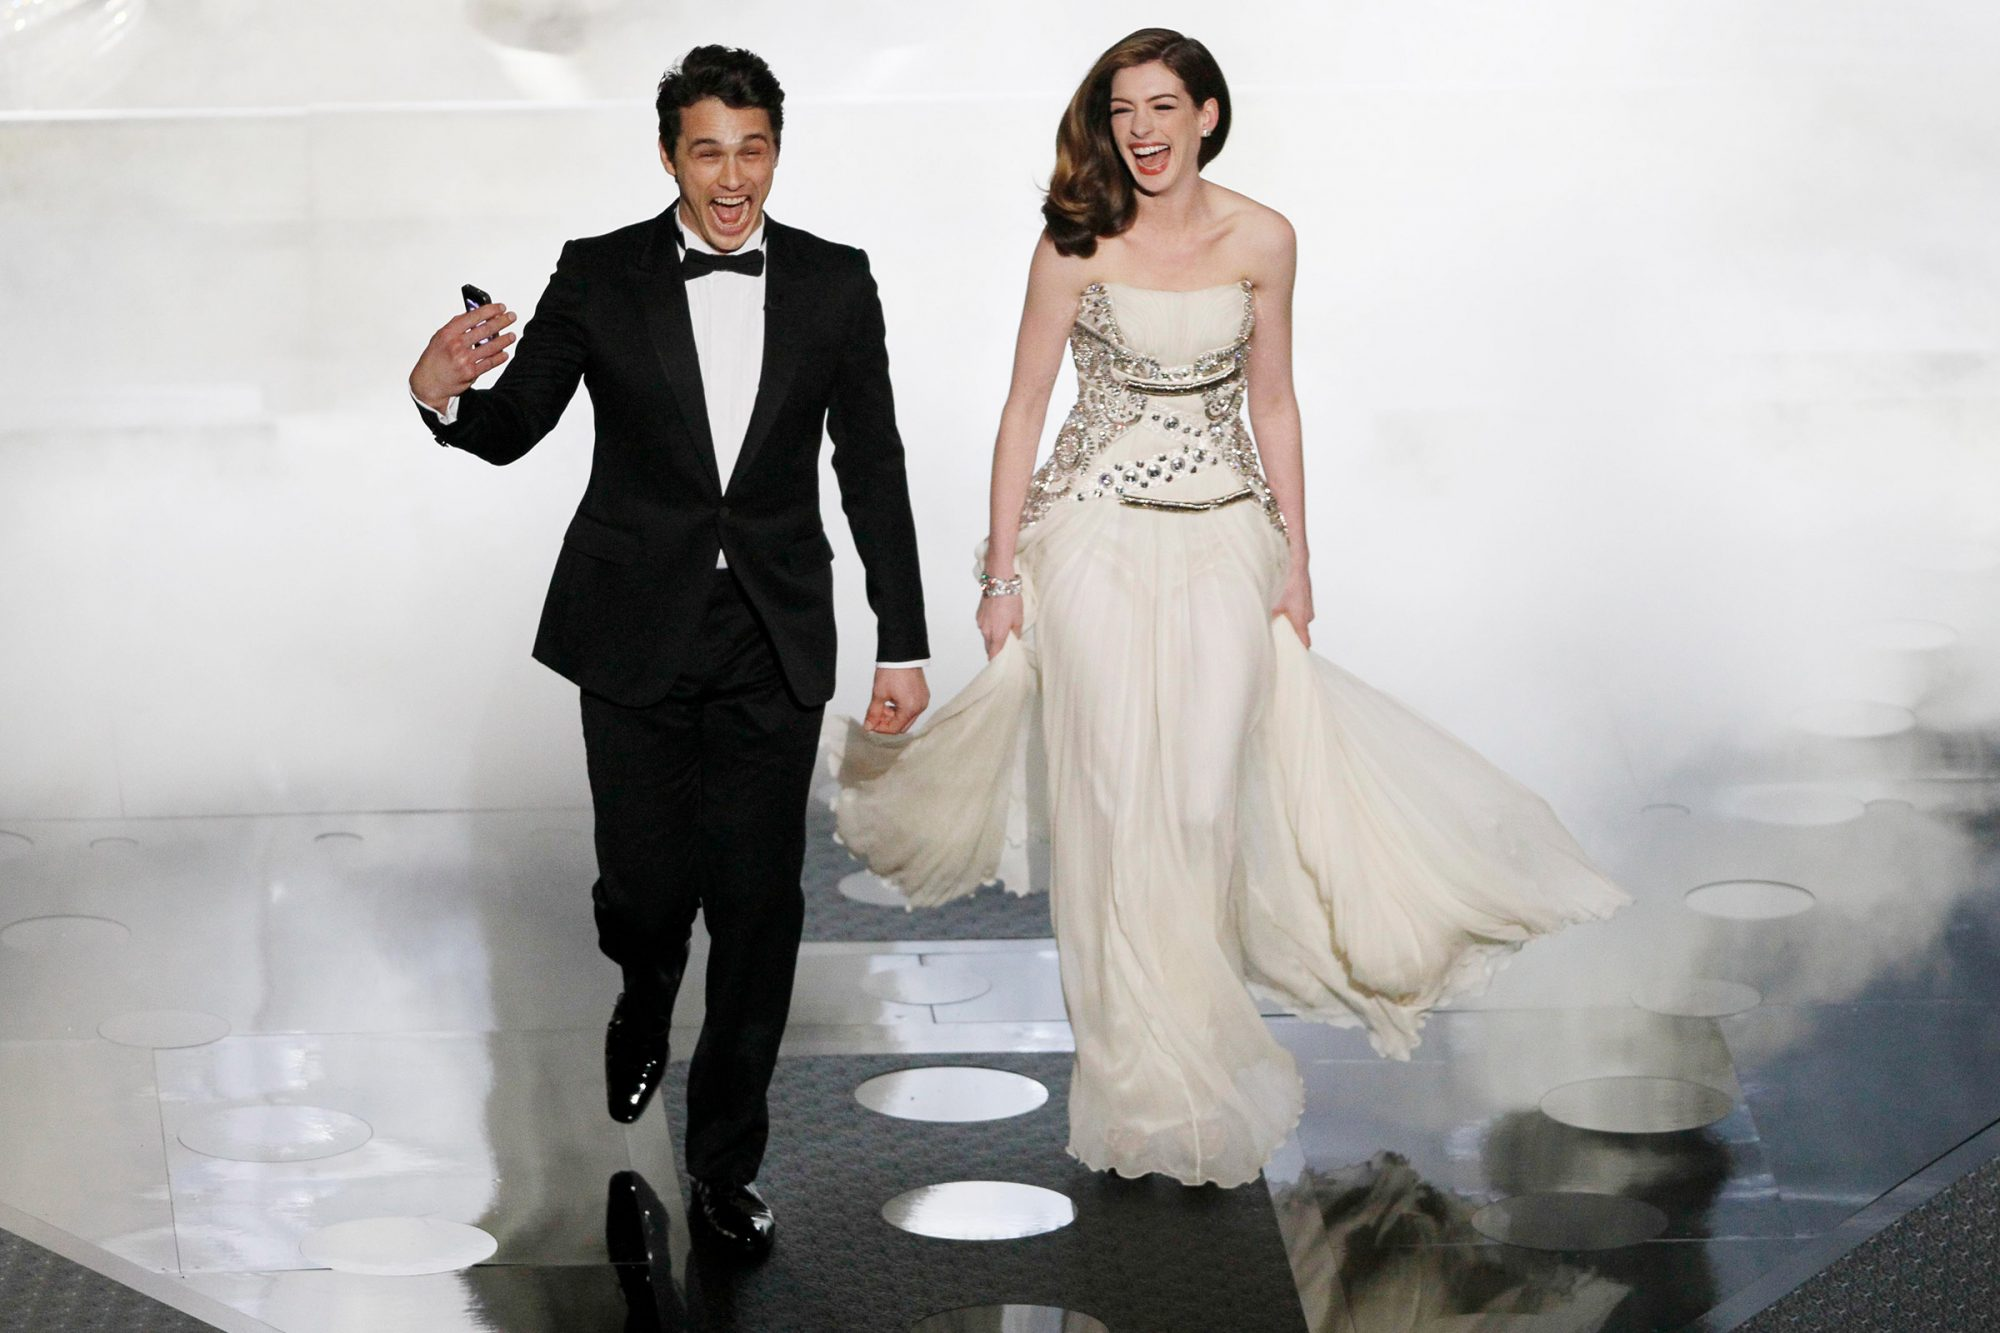 James Franco and Anne Hathaway enter the stage during the 83rd Annual Academy Awards